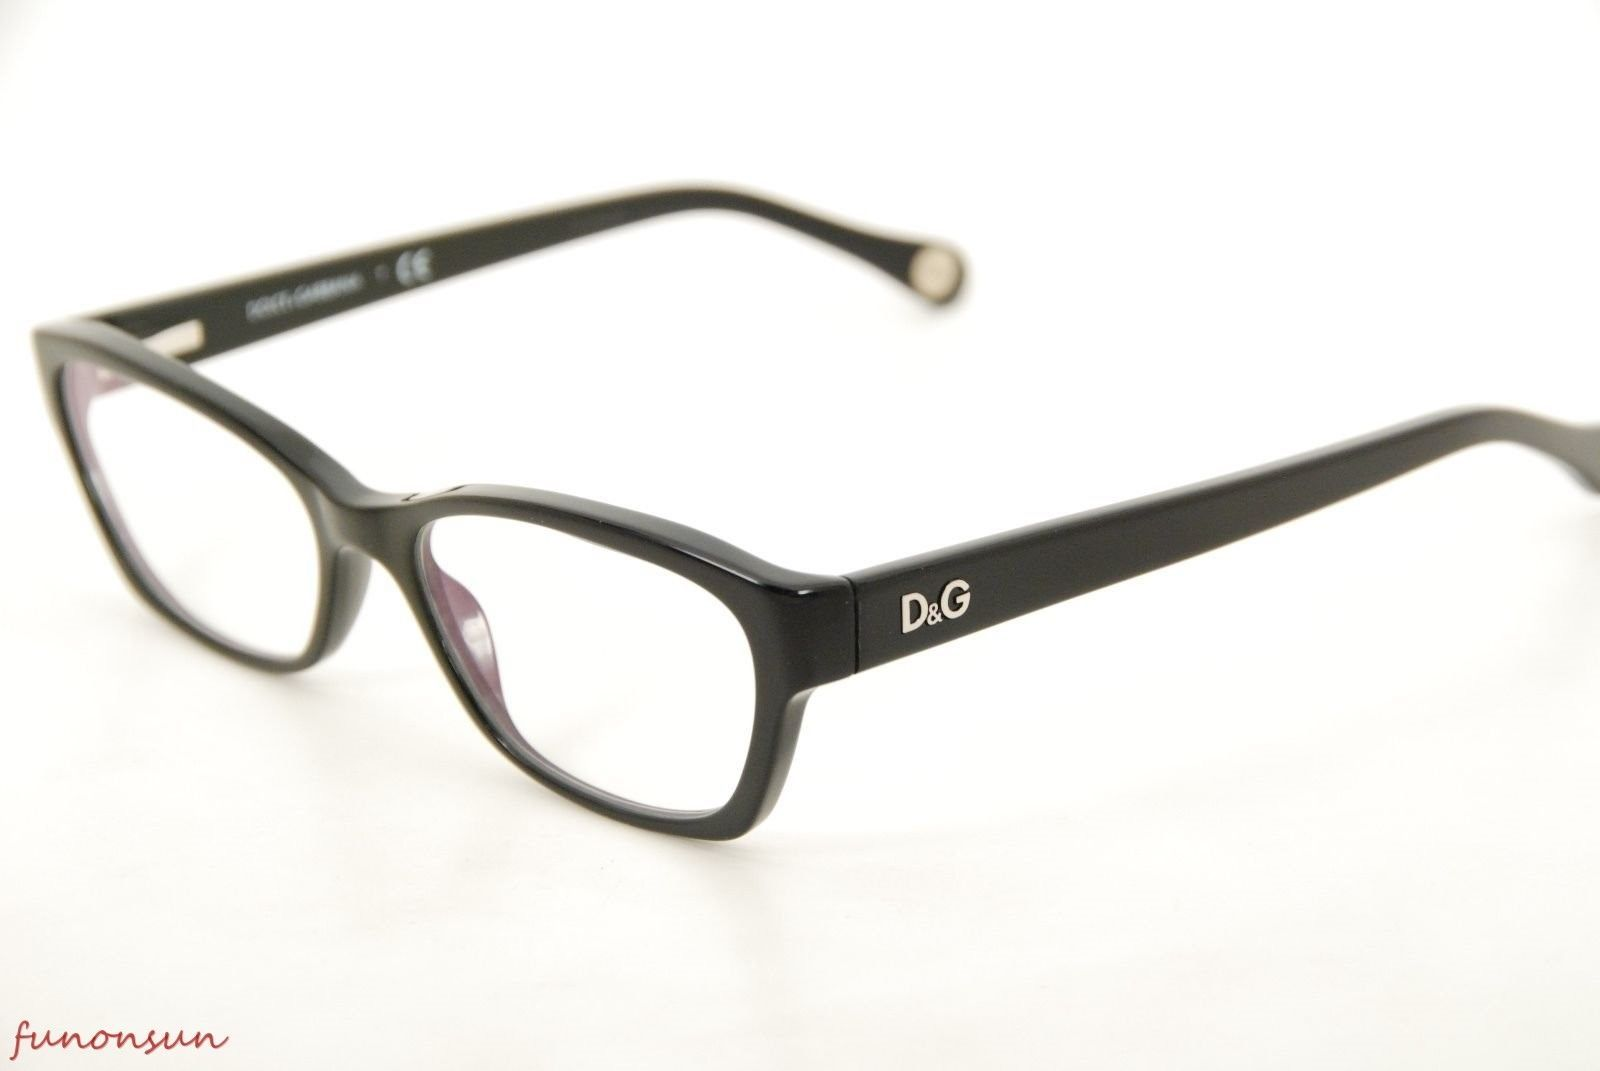 f8984ae33c1a2 Dolce   Gabbana Women s Eyeglasses D G and 50 similar items. S l1600